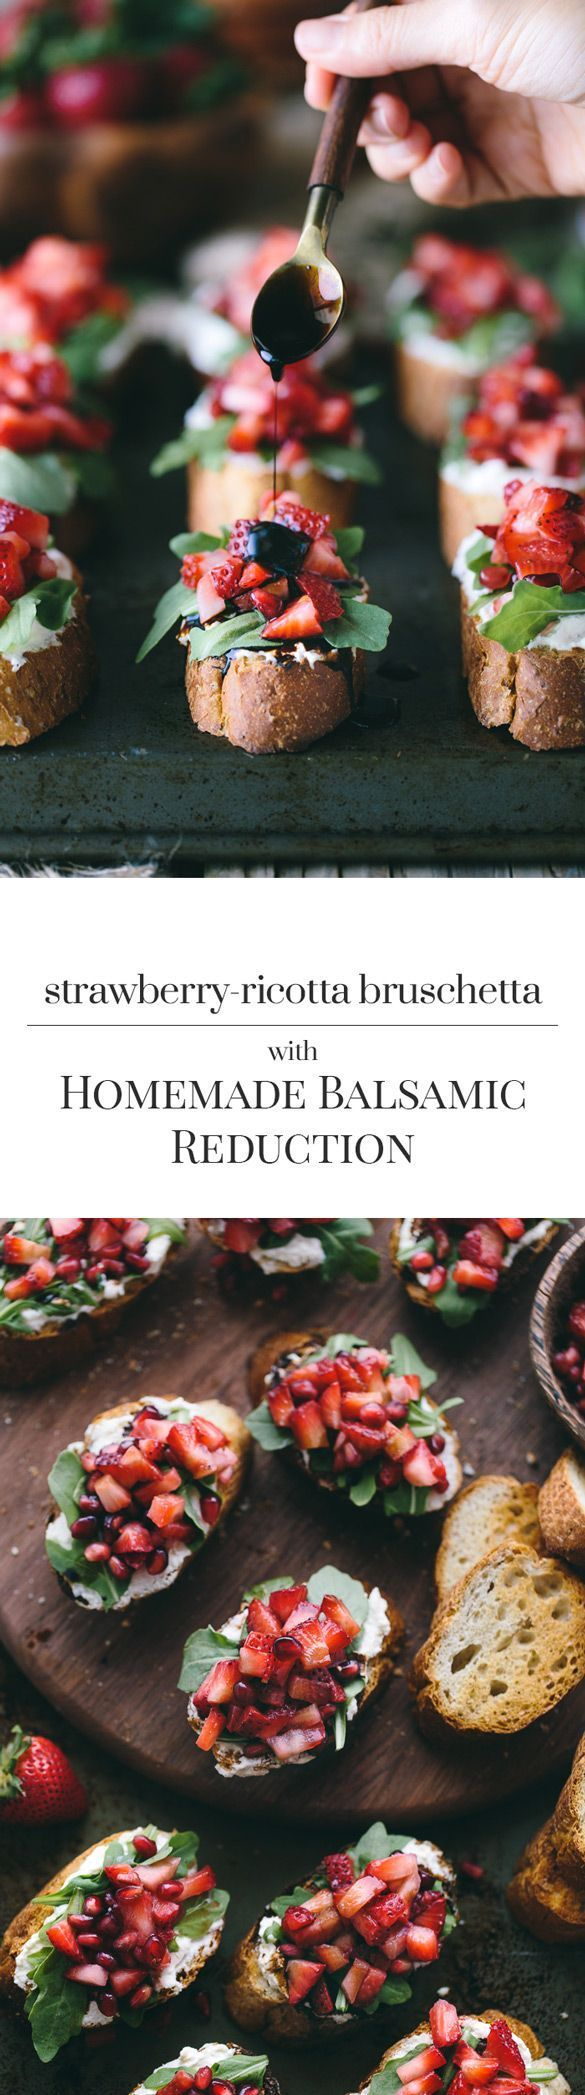 Strawberry-Ricotta Bruschetta with Balsamic Reduction: French Baguette slices spread with ricotta cheese, topped off with strawberries, and drizzled with homemade balsamic reduction.